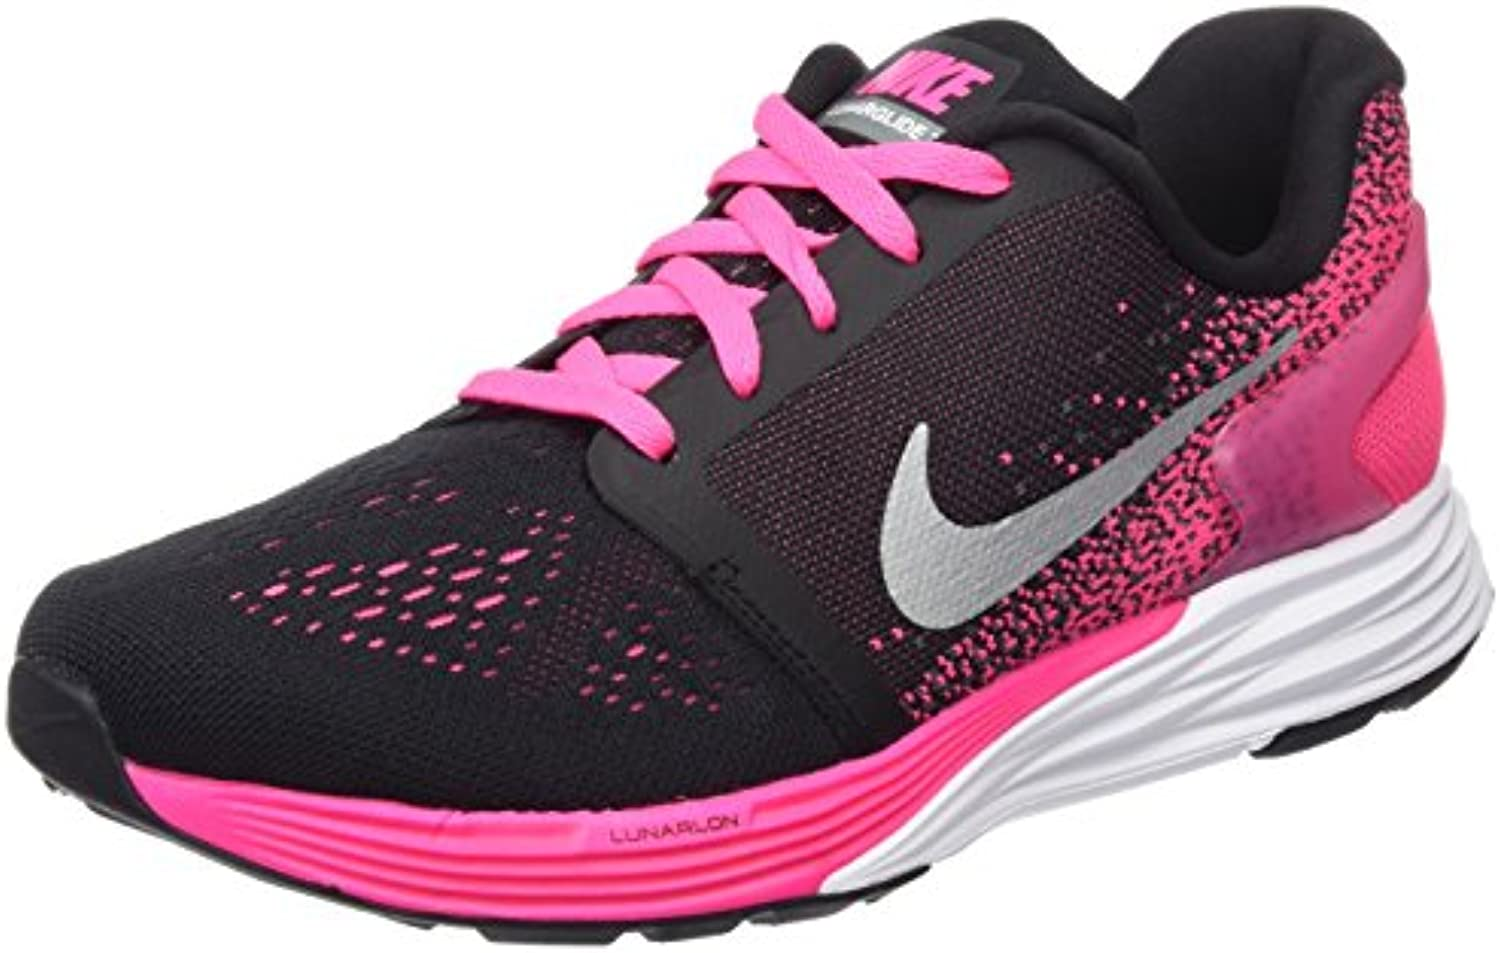 NIKE Lunarglide 7 GS, Chaussures Chaussures Chaussures de Running Entrainement Fille fce4b6